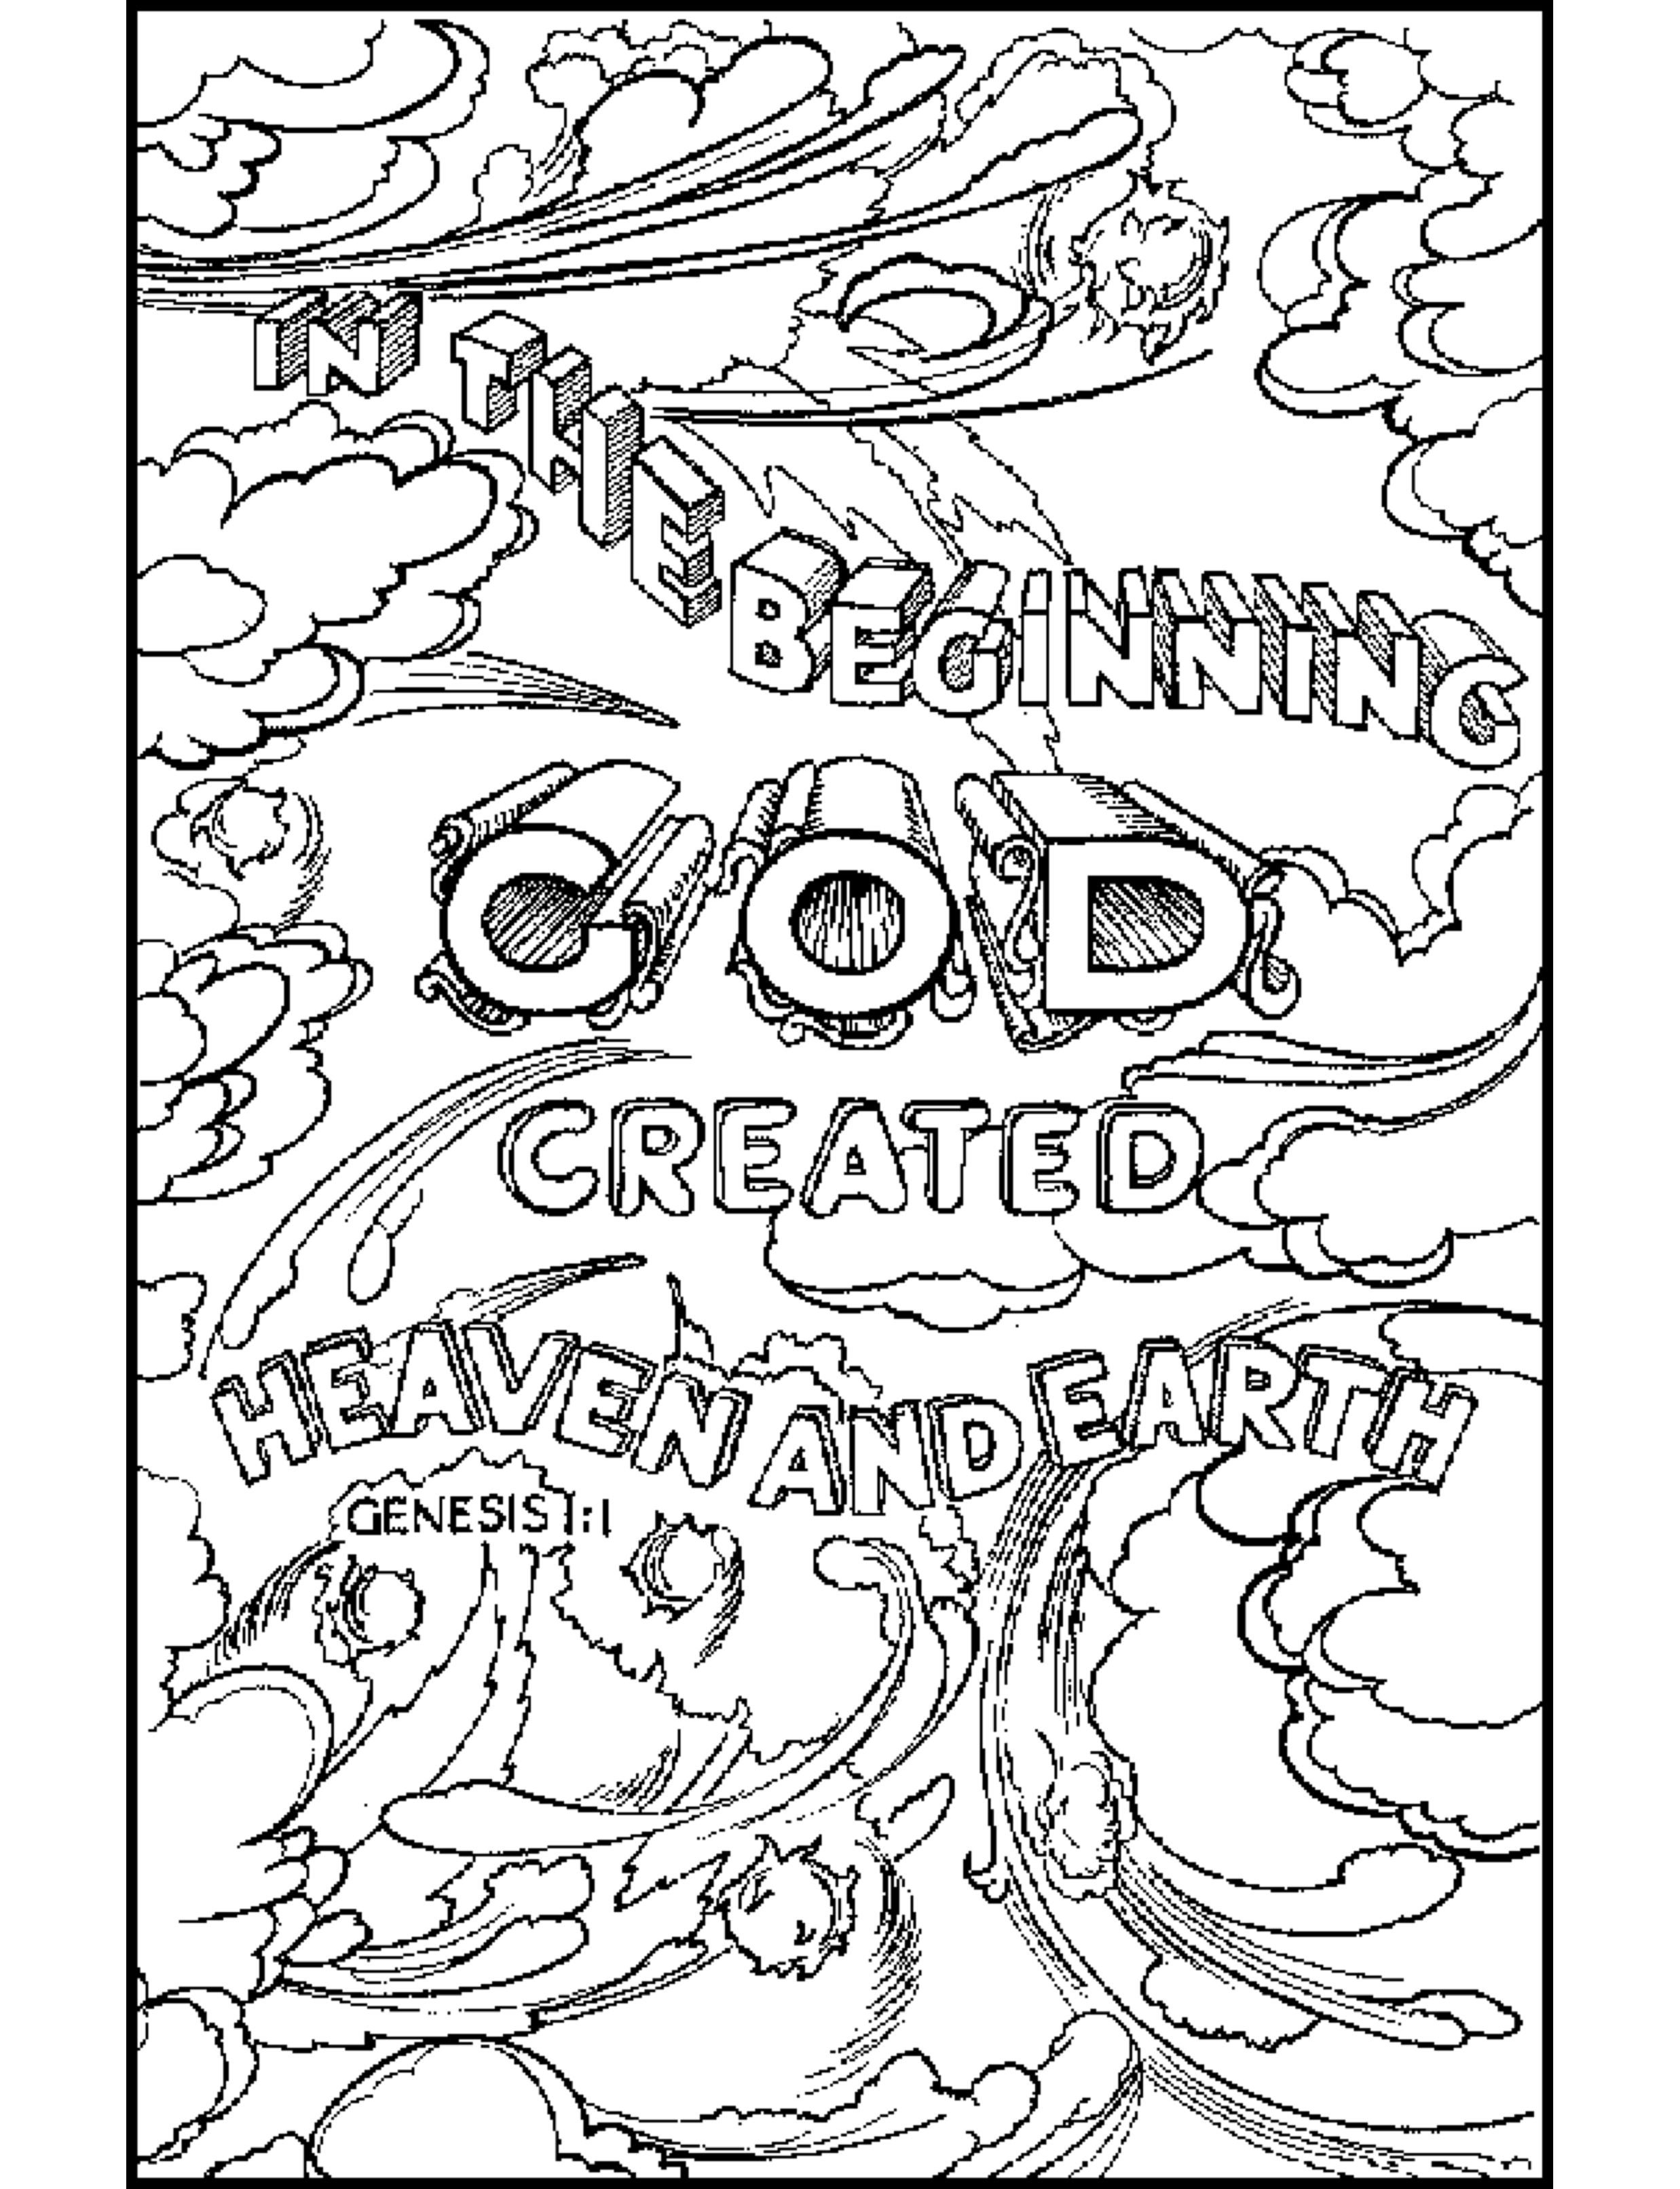 bible coloring for kids bible app for kids coloring sheets coloring kids bible for